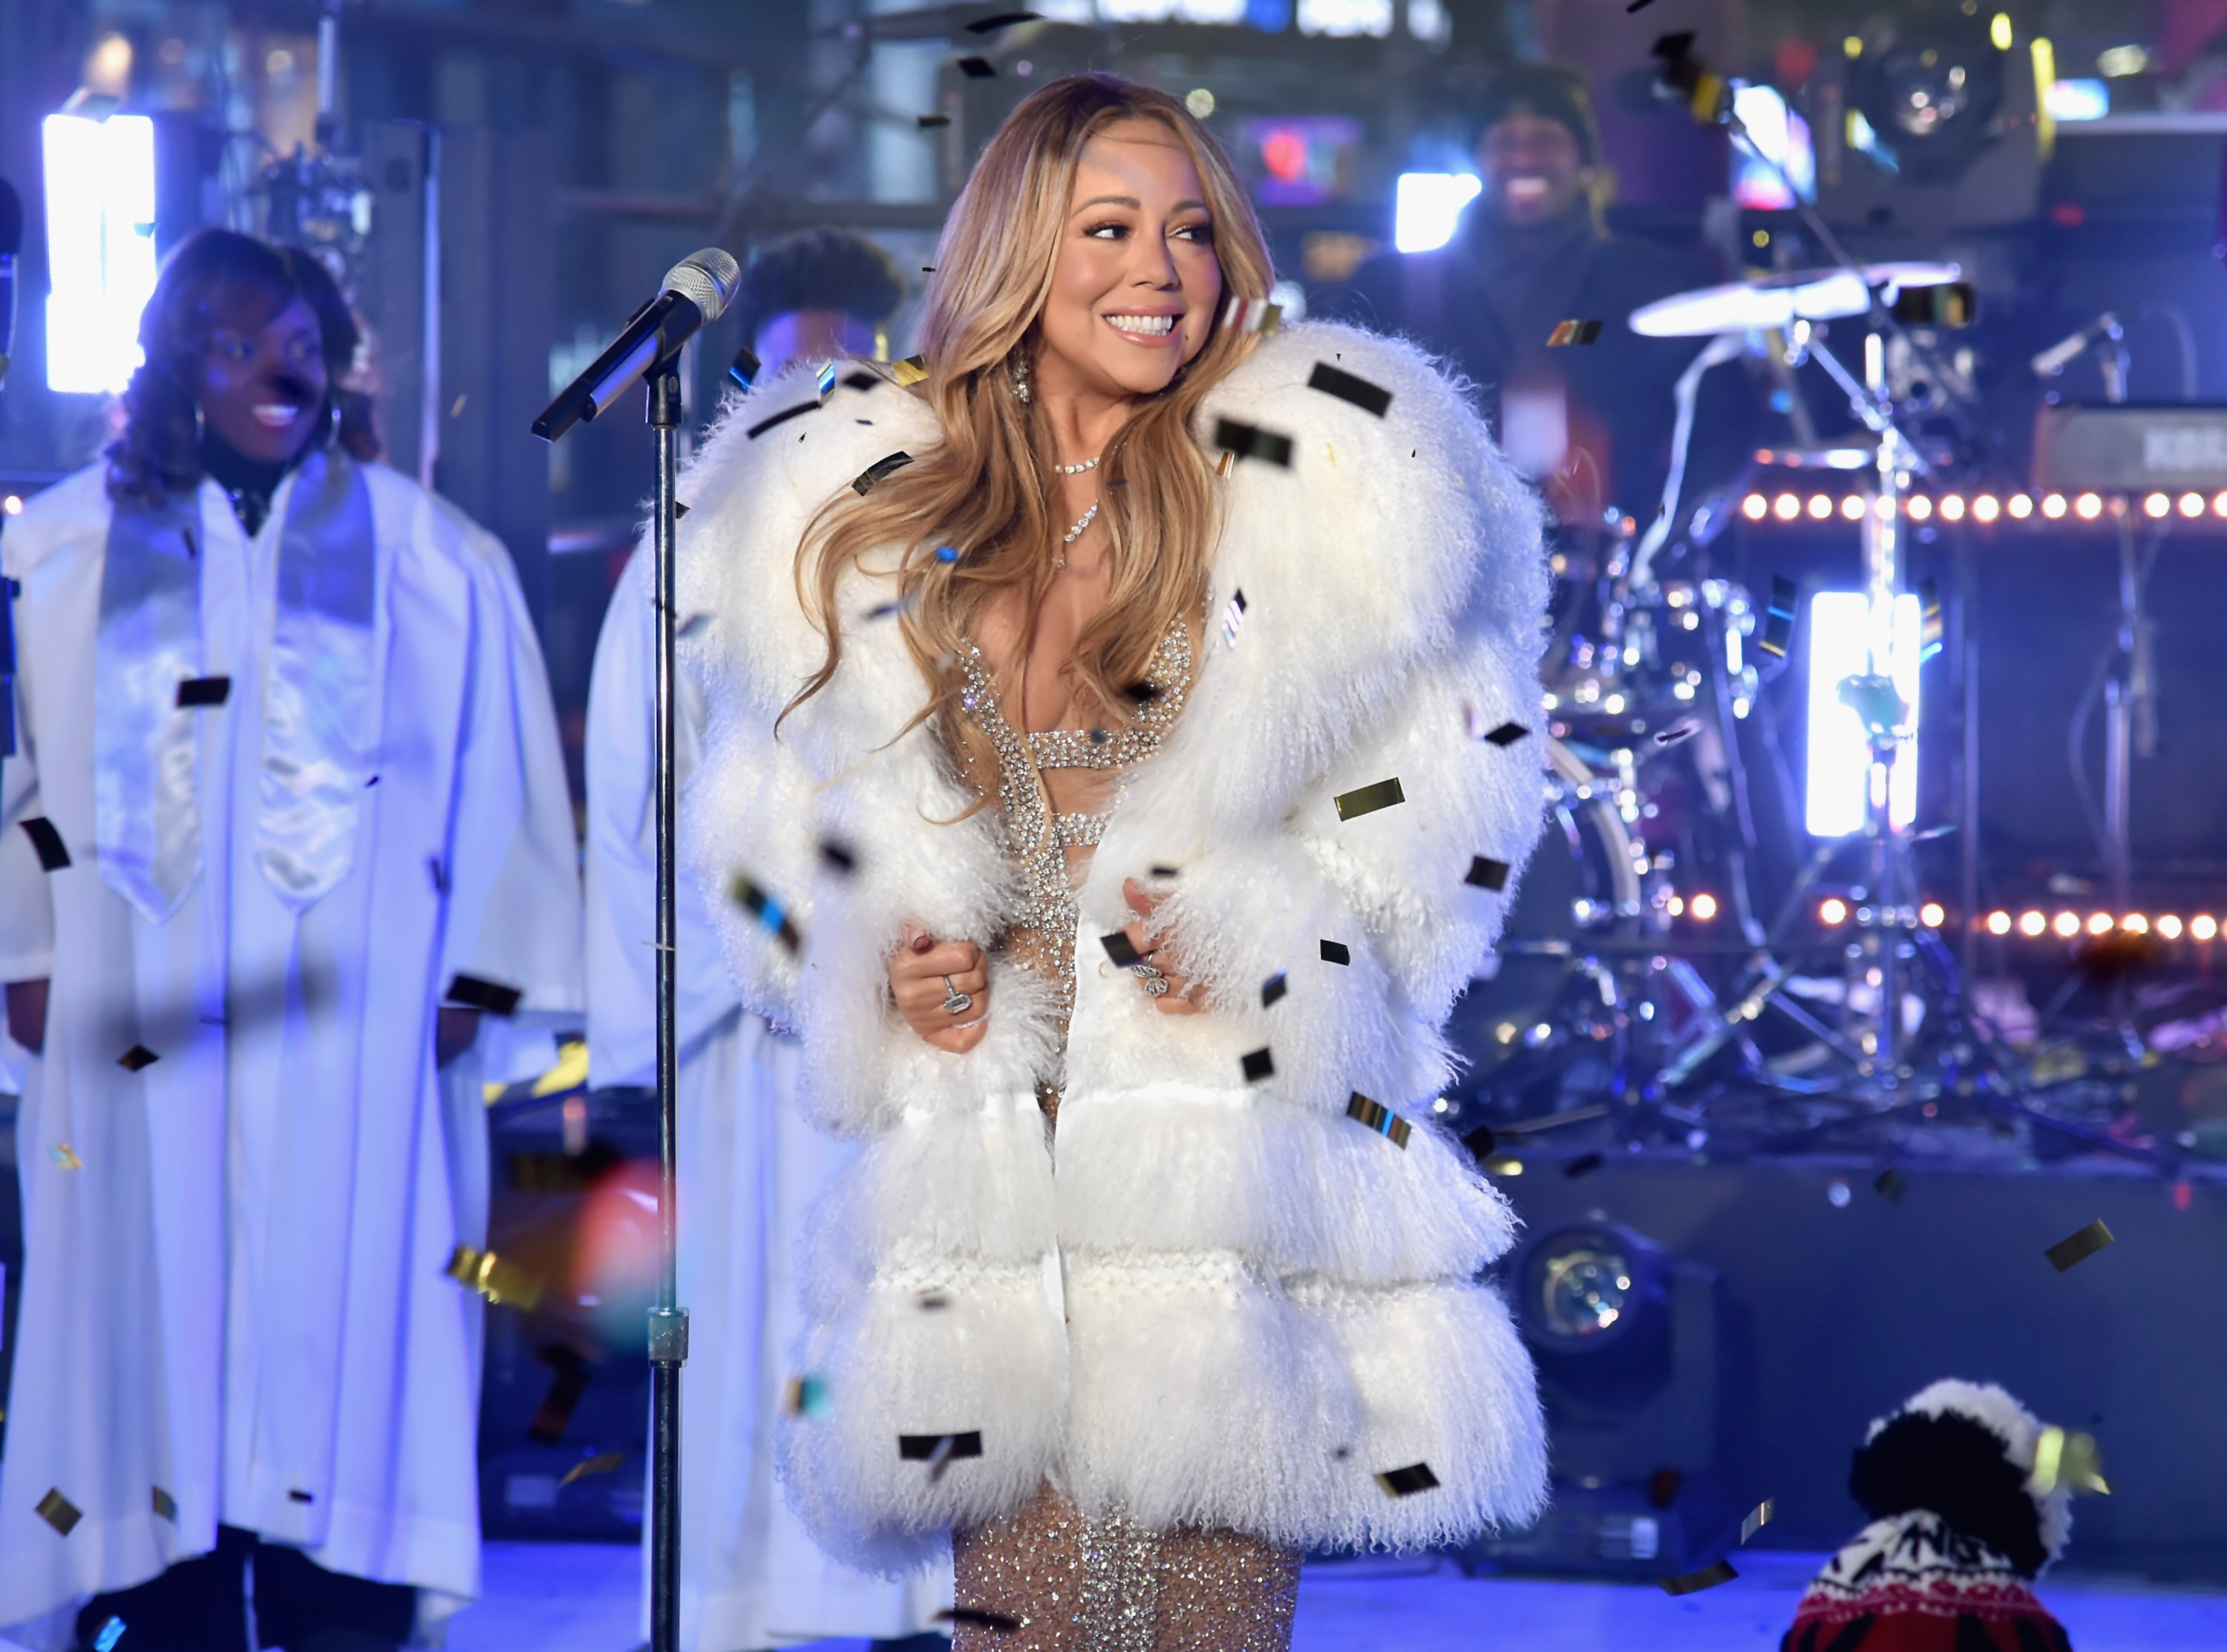 Mariah Carey performs at the Dick Clark's New Year's Rockin' Eve on December 31, 2017. | Photo: Getty Images